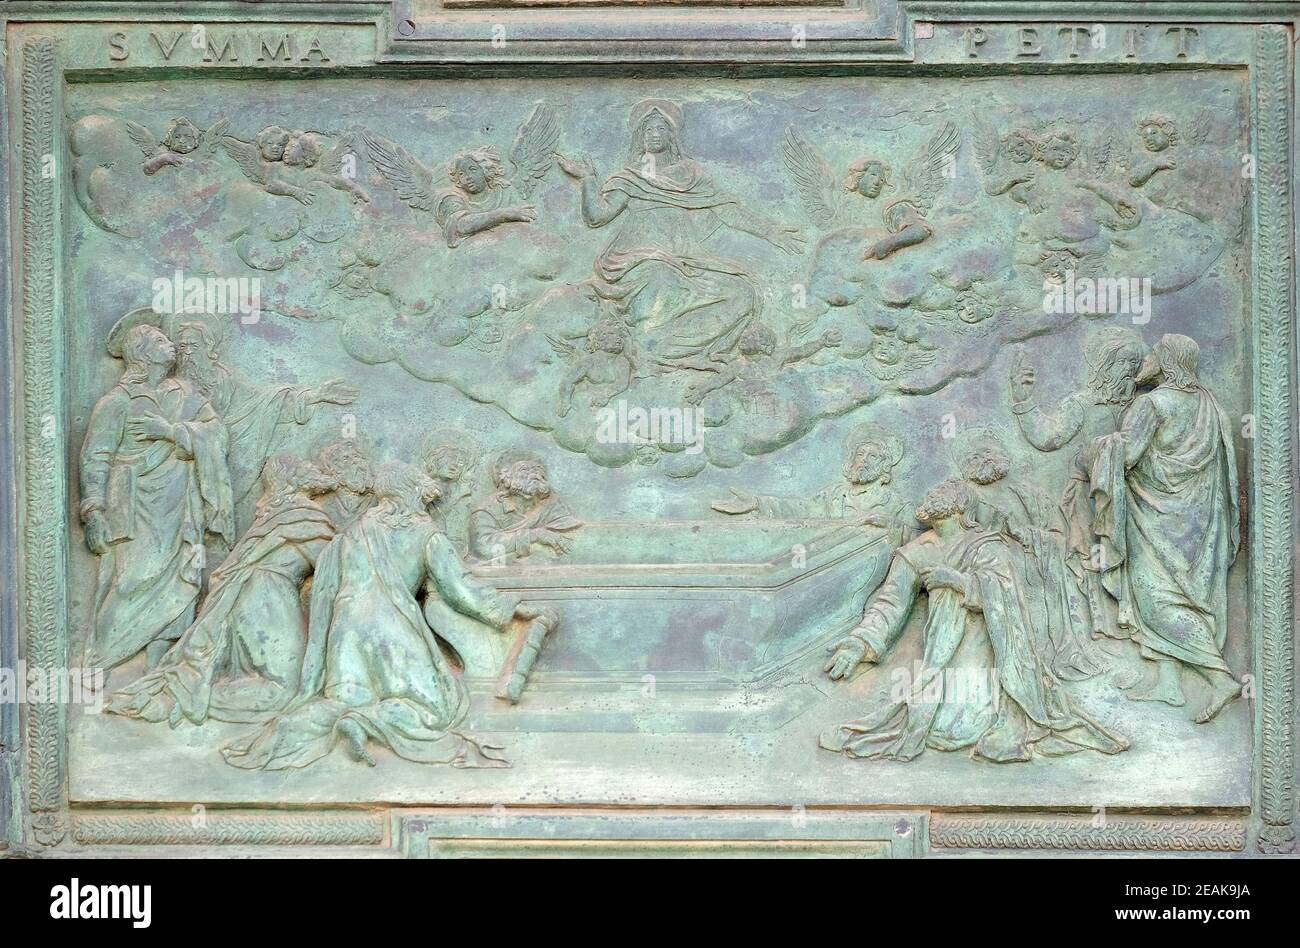 Assumption of the Virgin Mary, panel from Giambologna's school, collocated in the central portal of the Cathedral St. Mary of the Assumption in Pisa, Italy Stock Photo